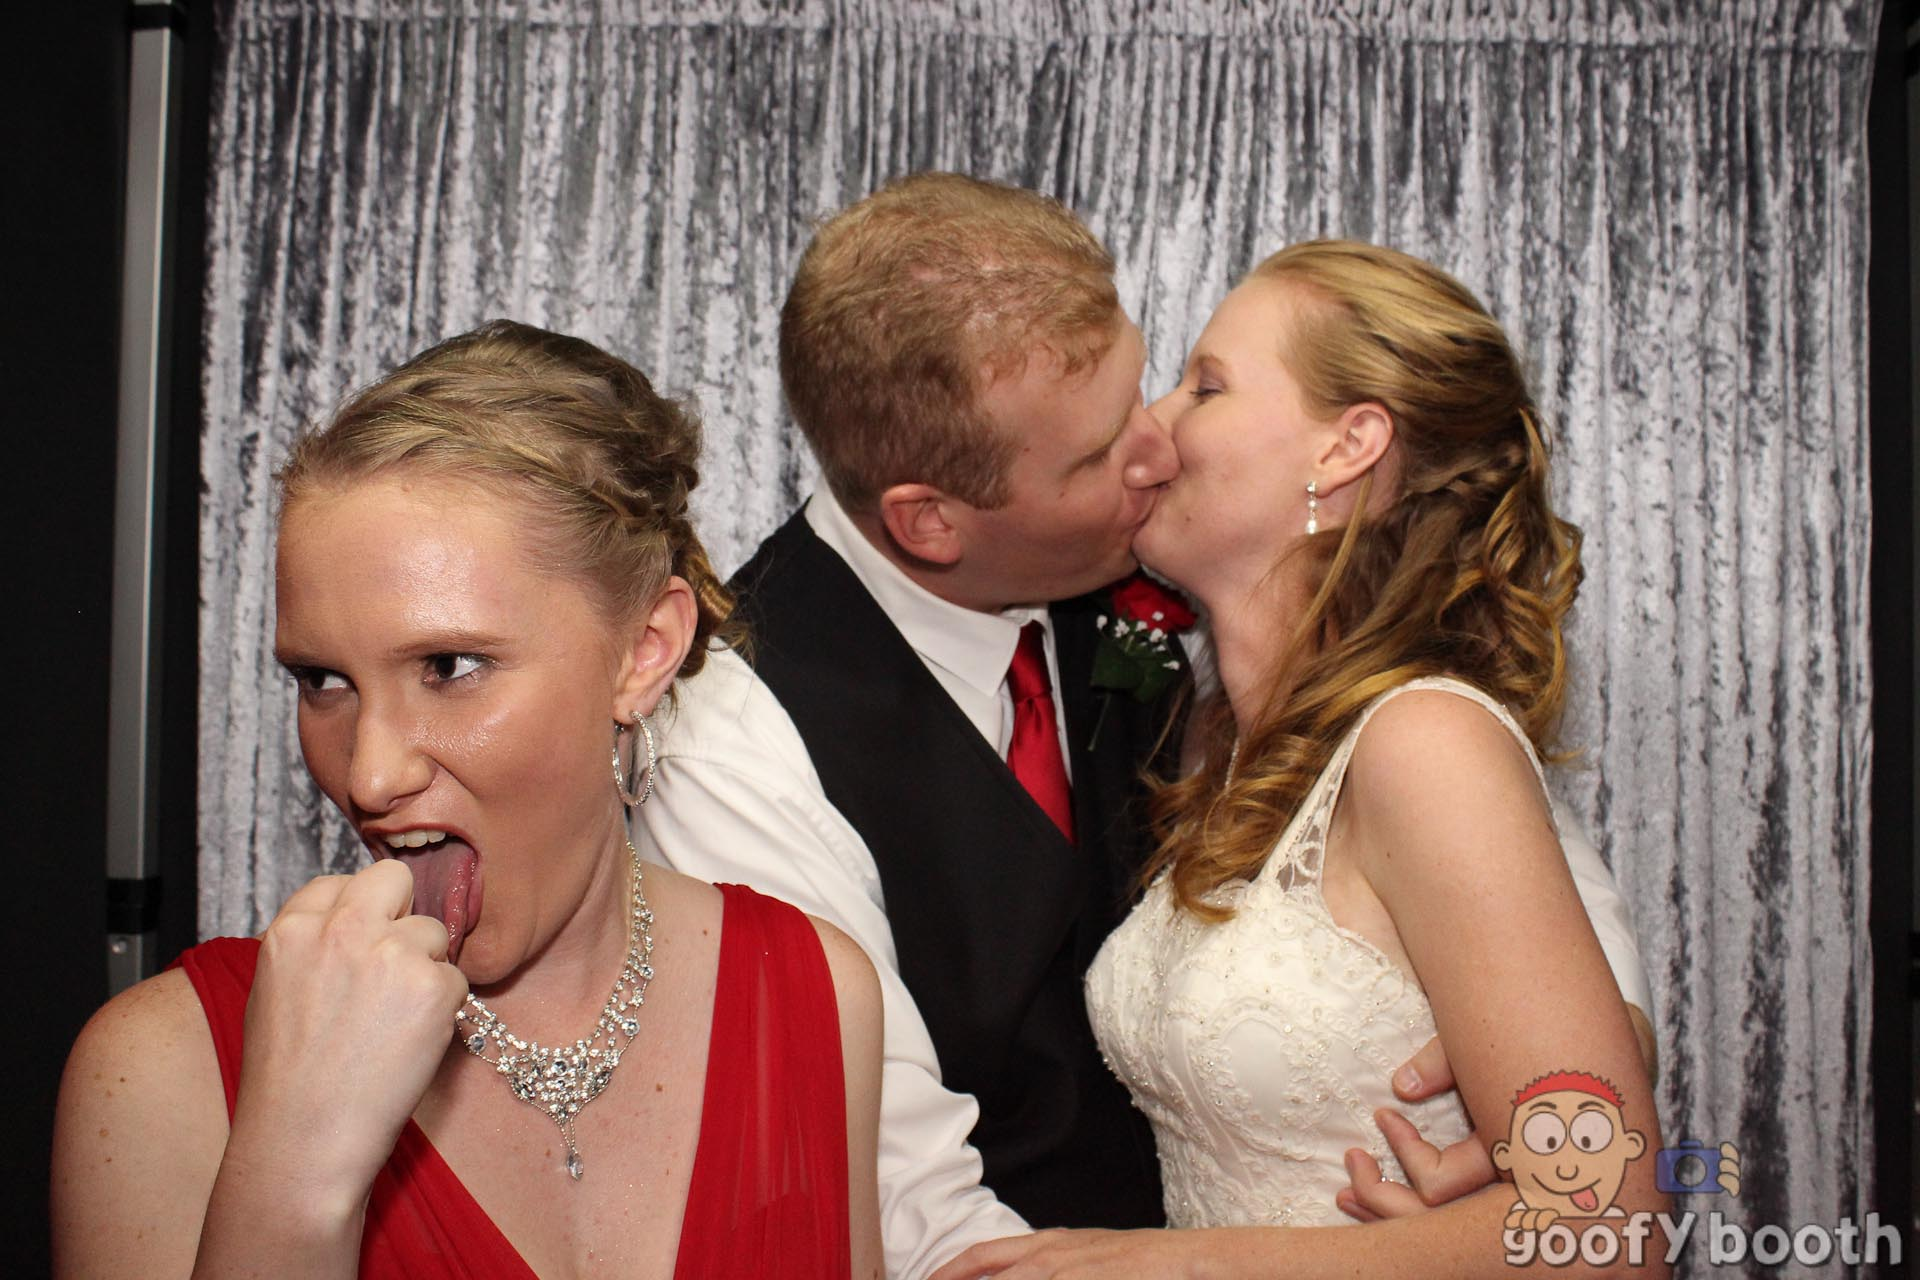 Photo Booth Hire for Wedding Reception - Photobooth